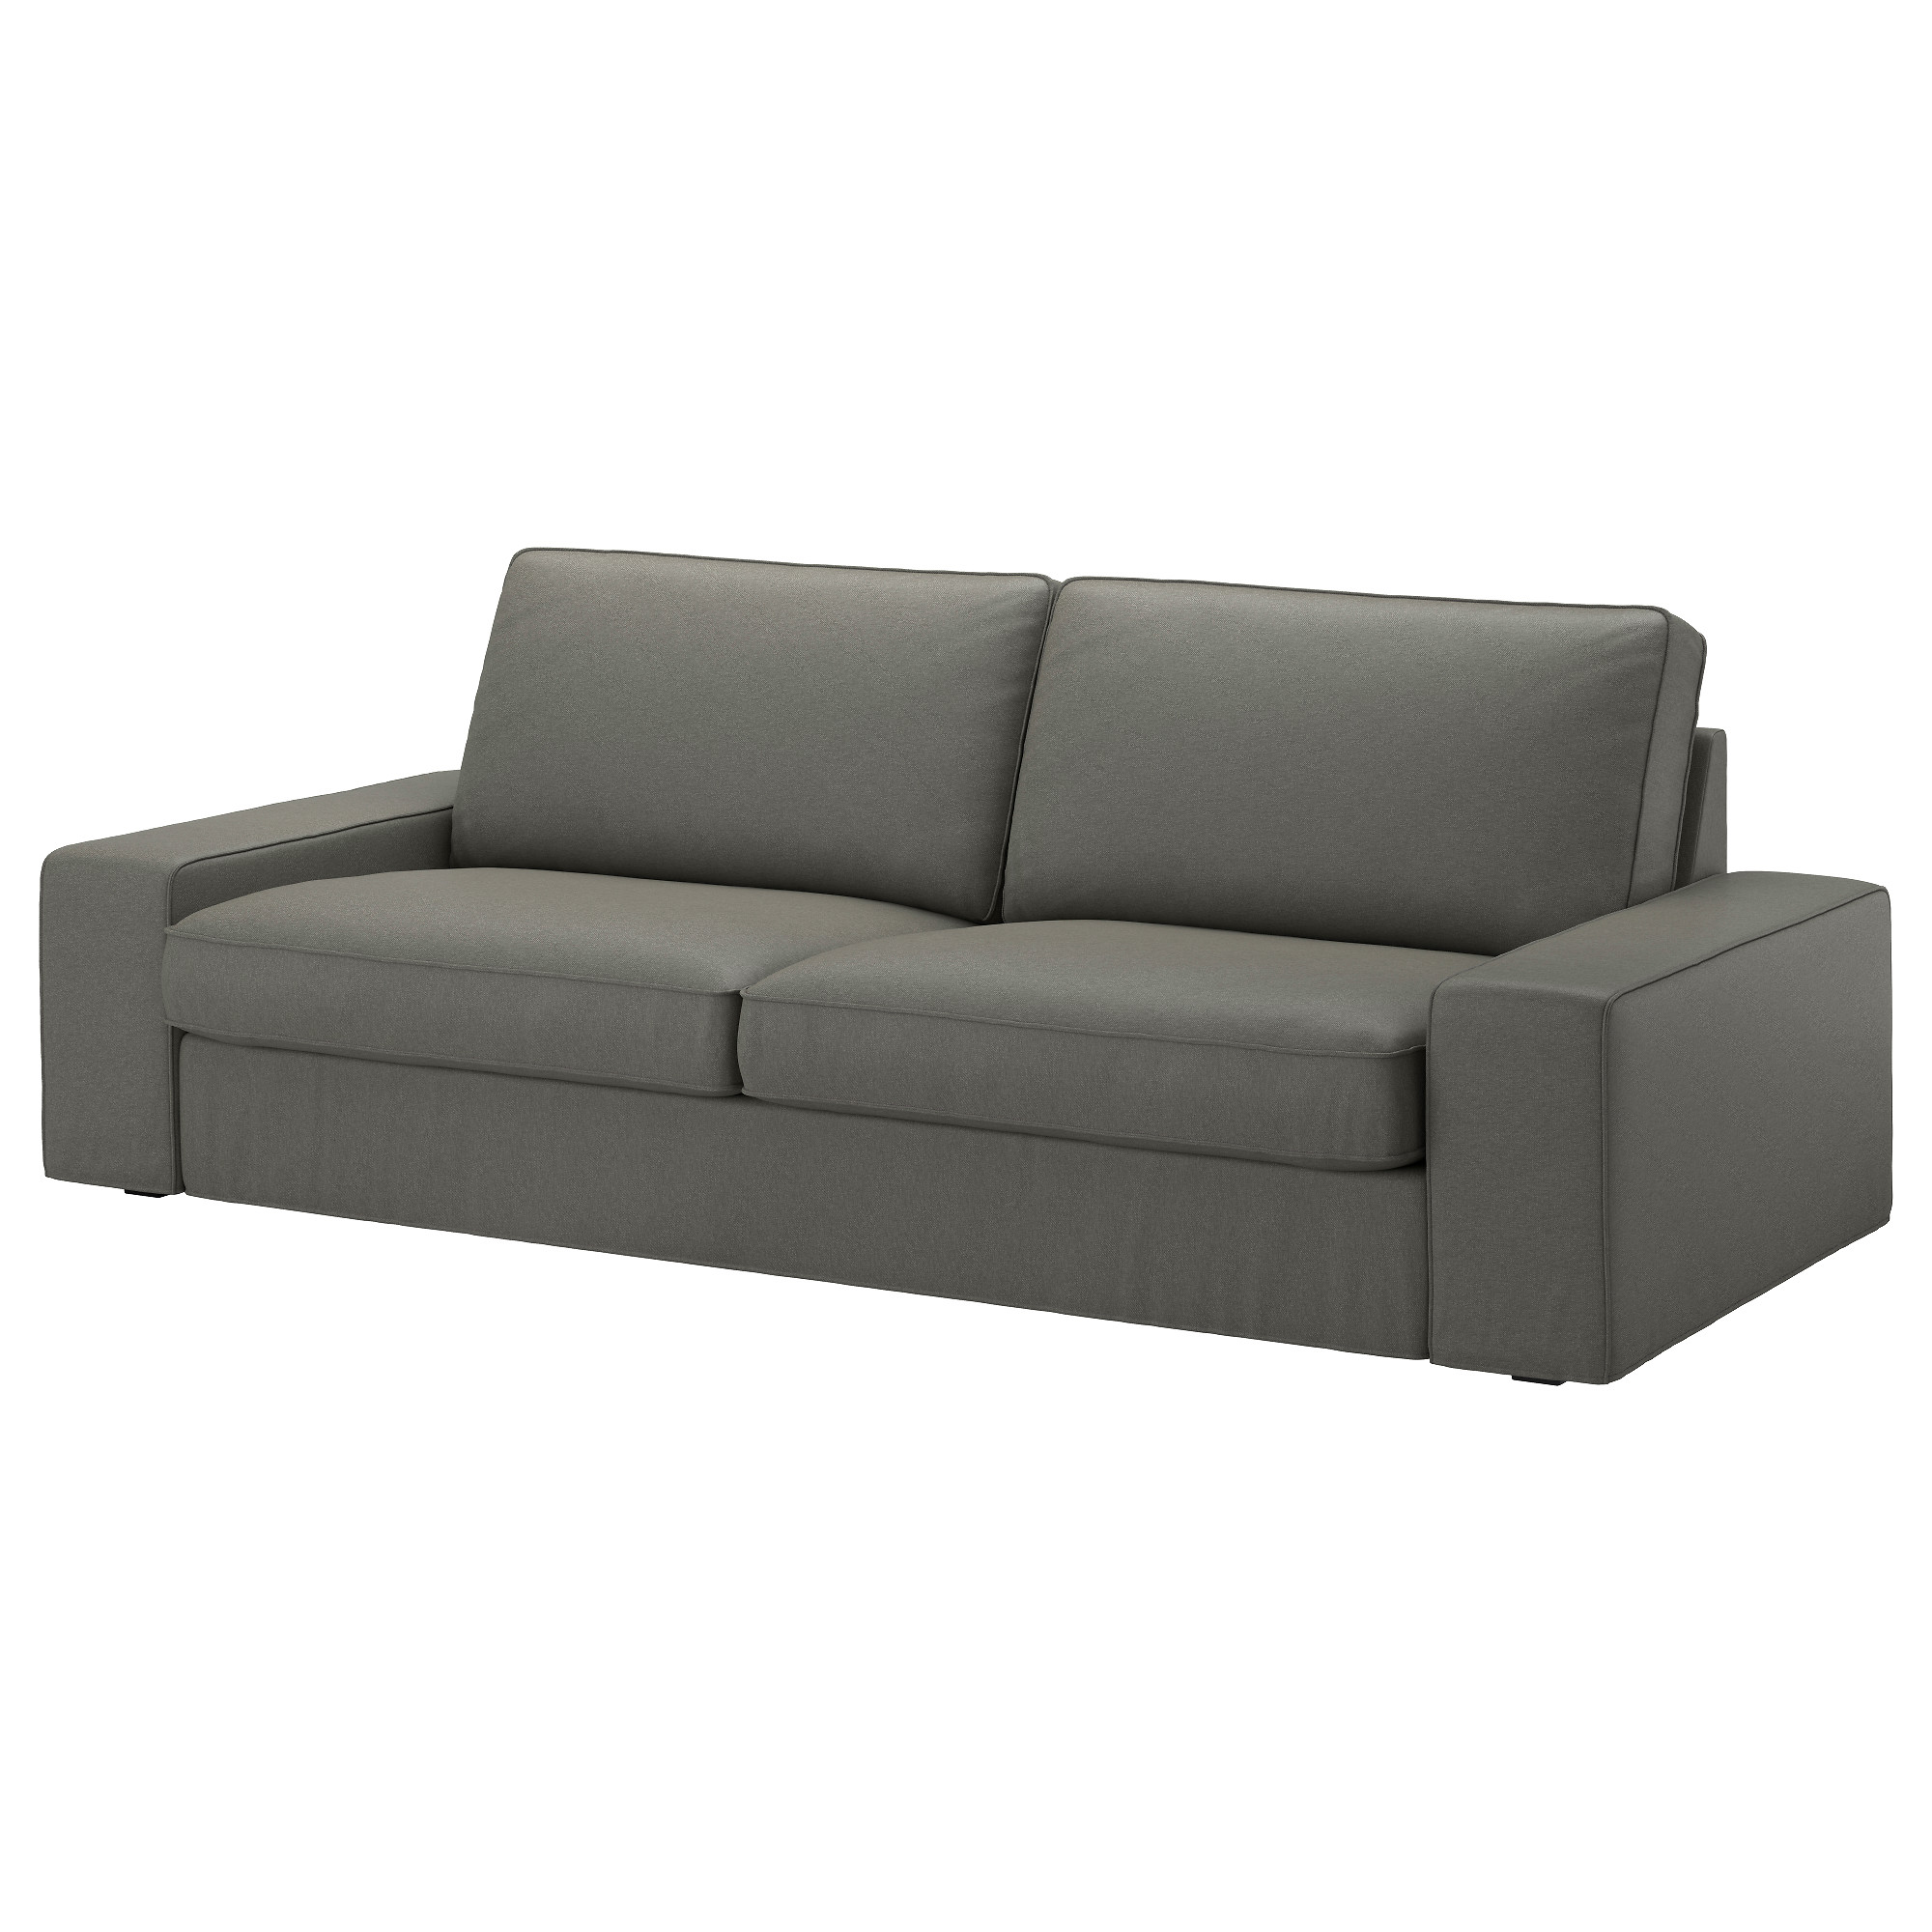 Dreisitzer Sofa Ikea Kivik Sofa Orrsta Light Gray